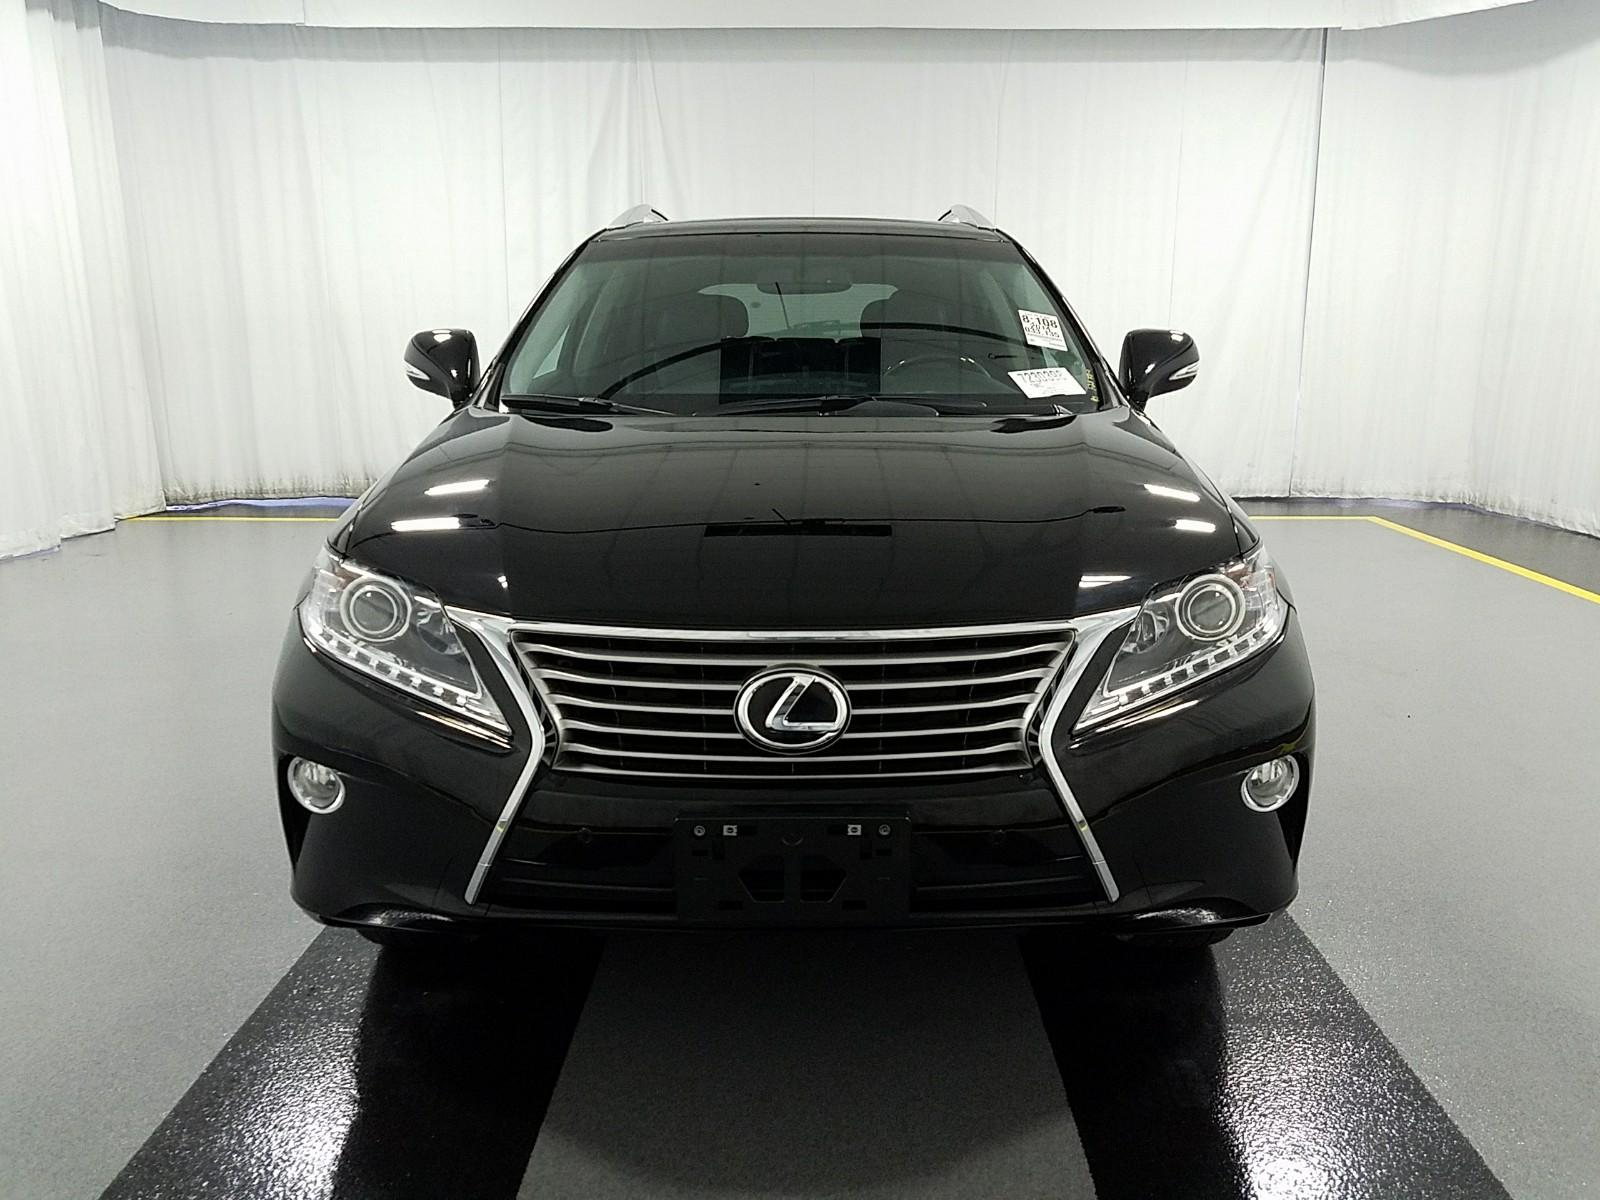 carfinder mv lexus lot en auction auto newburgh online on ny certificate rx salvage copart ended auctions in vin